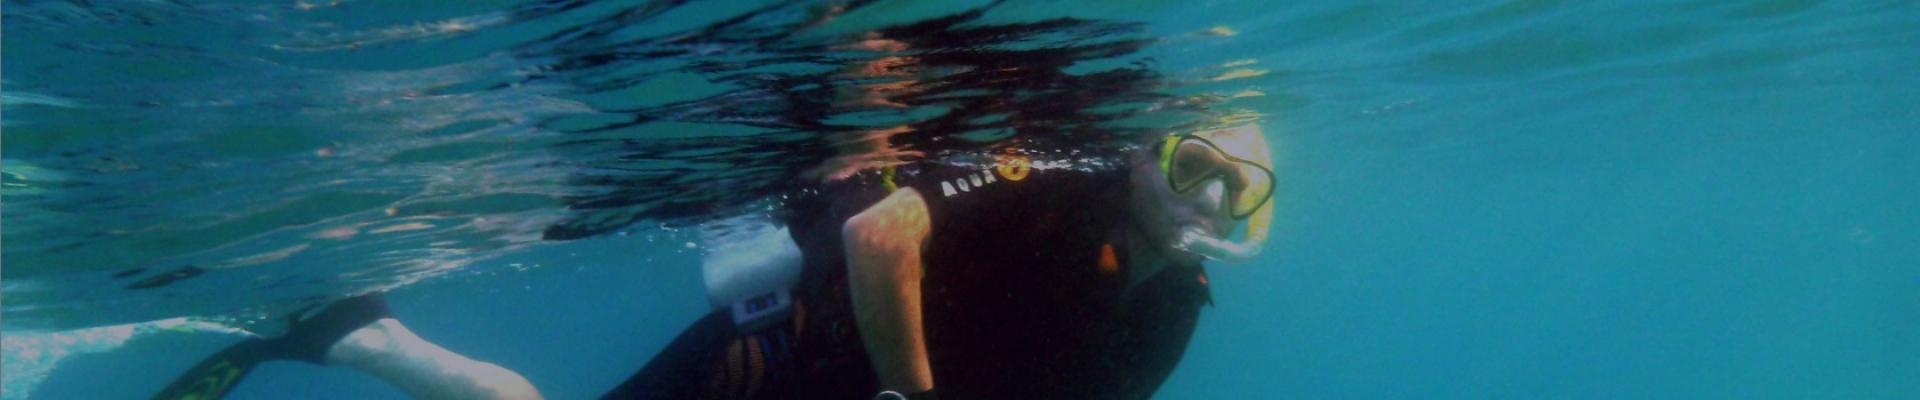 Scuba diving in the Andamans